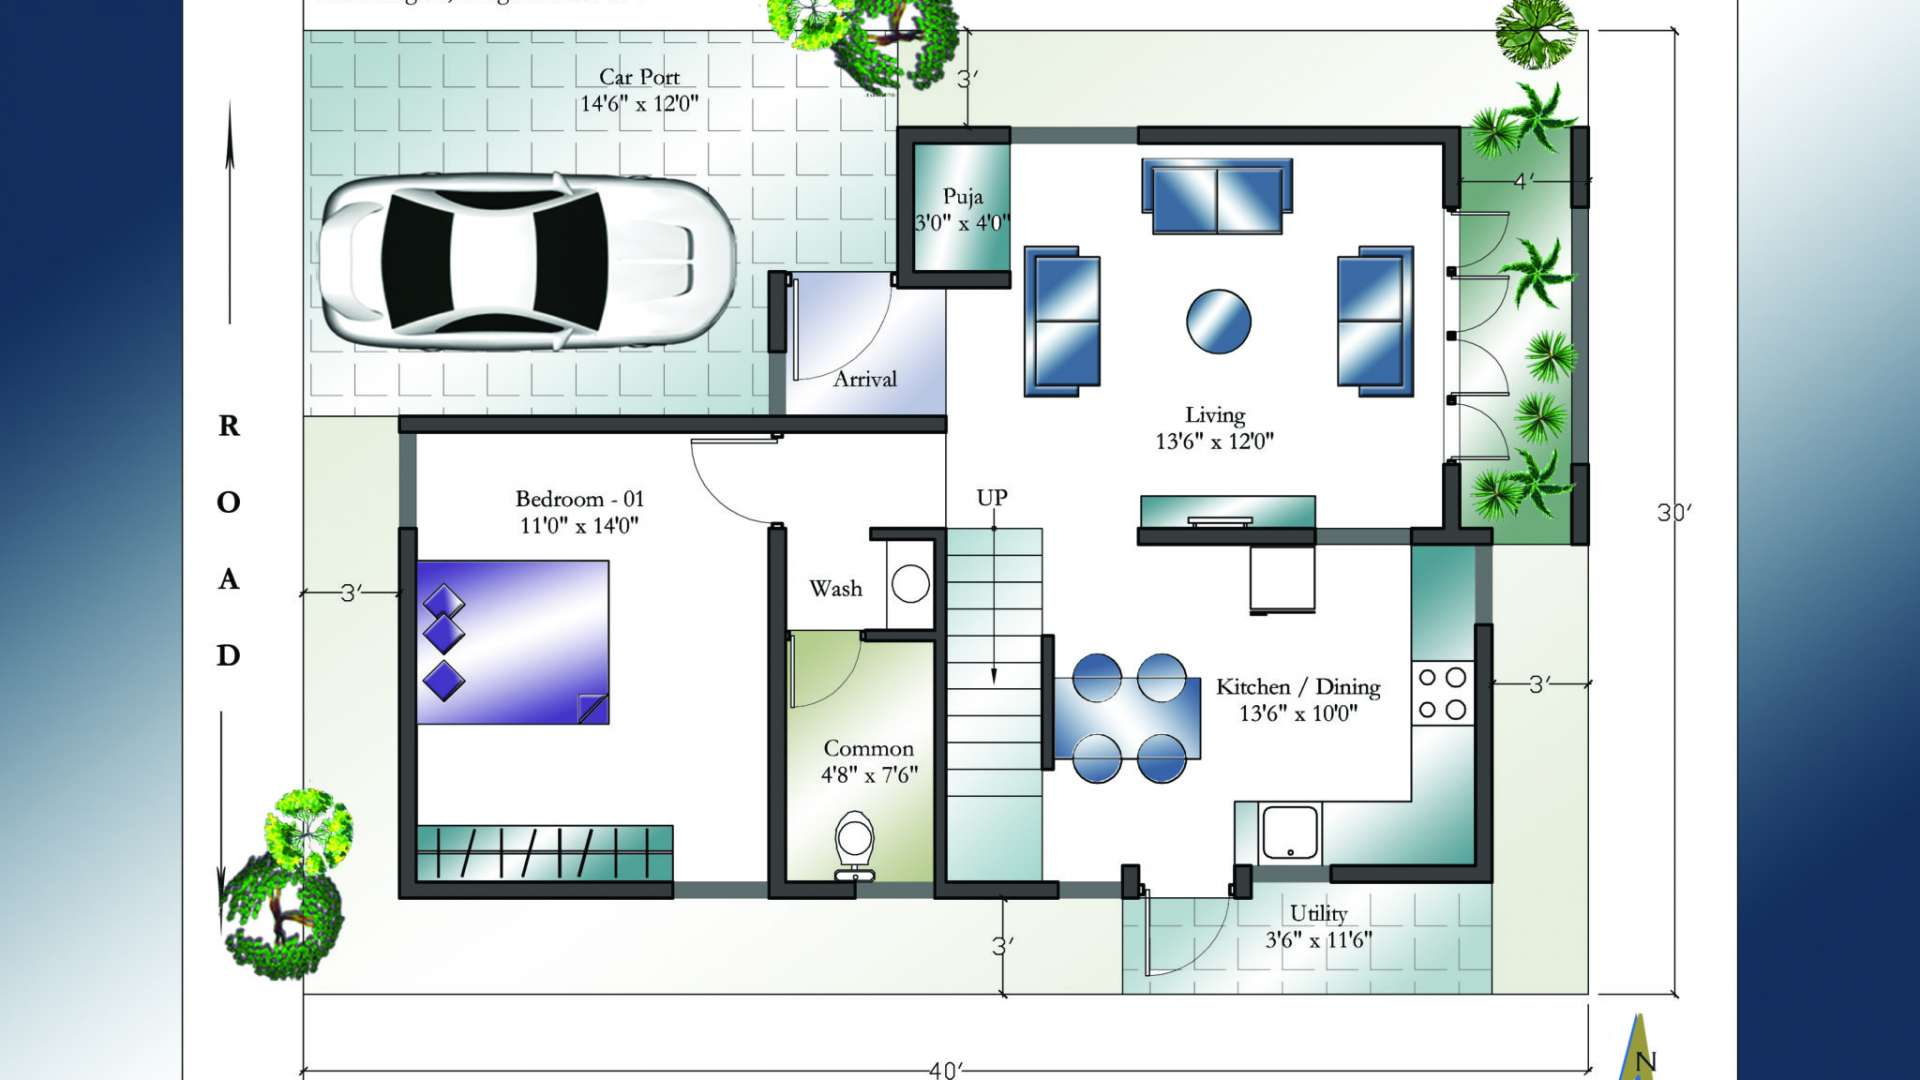 30 x 40 west facing house plans everyone will like homes in kerala india - Home design blueprints ...